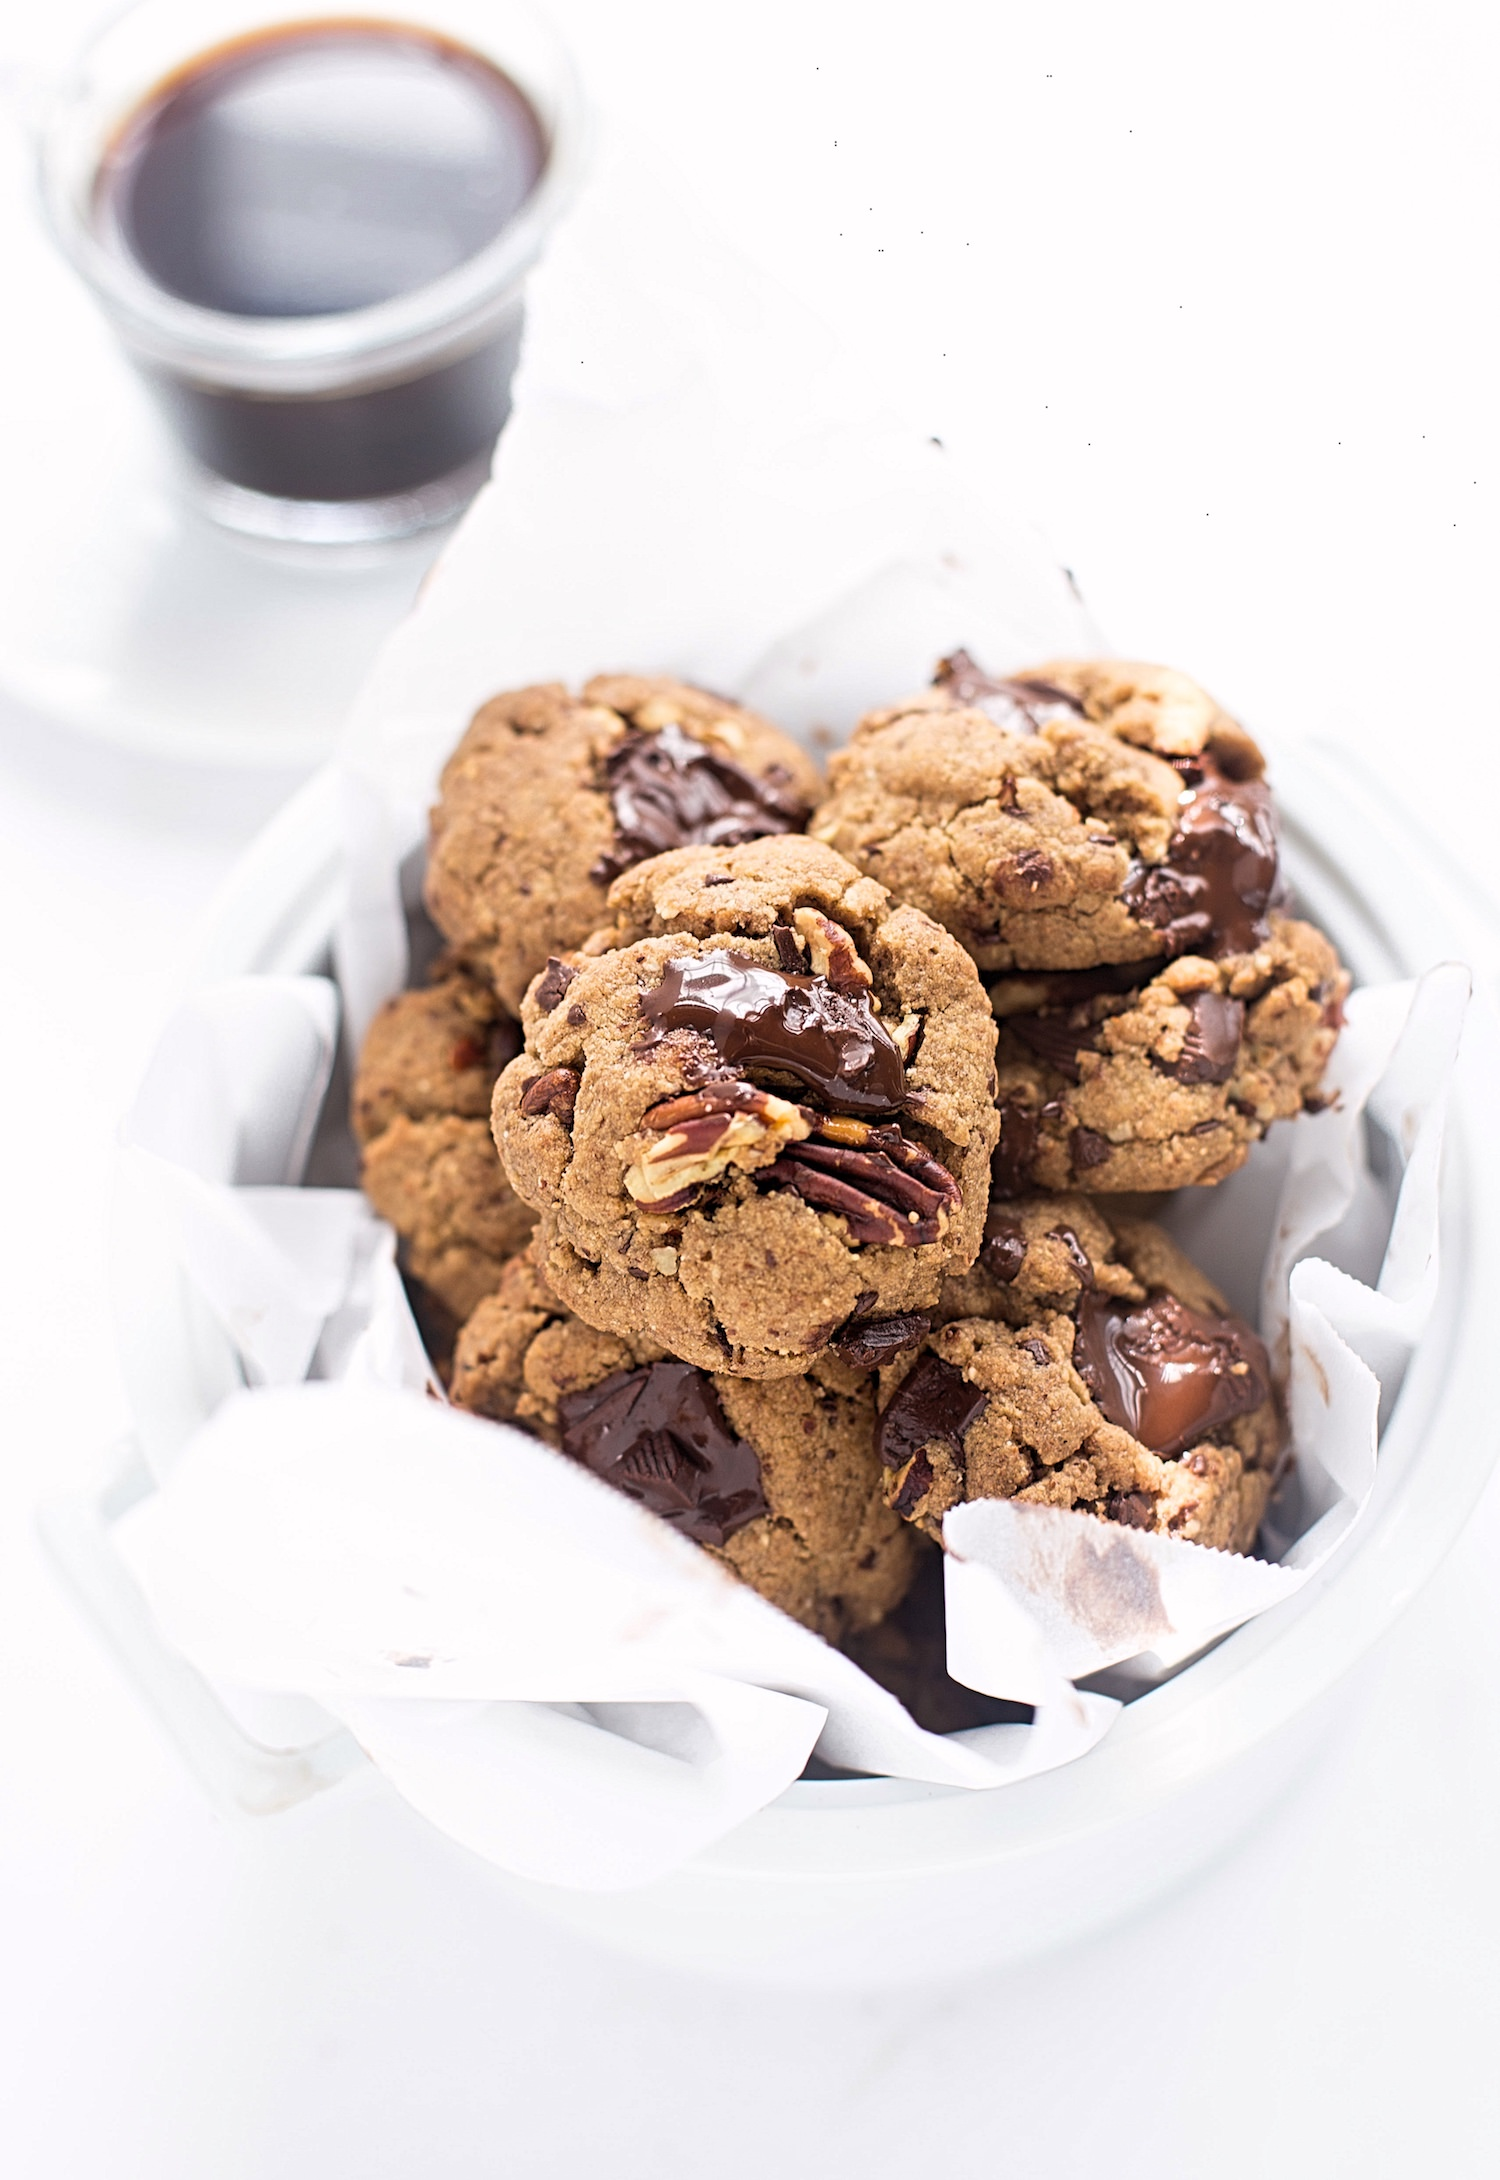 Wholesome(ish) Nut Butter Chocolate Chip Cookies: soft, chewy, rich whole wheat cookies made with nut butter, coconut oil, chocolate chunks, and chopped nuts. | TrufflesandTrends.com